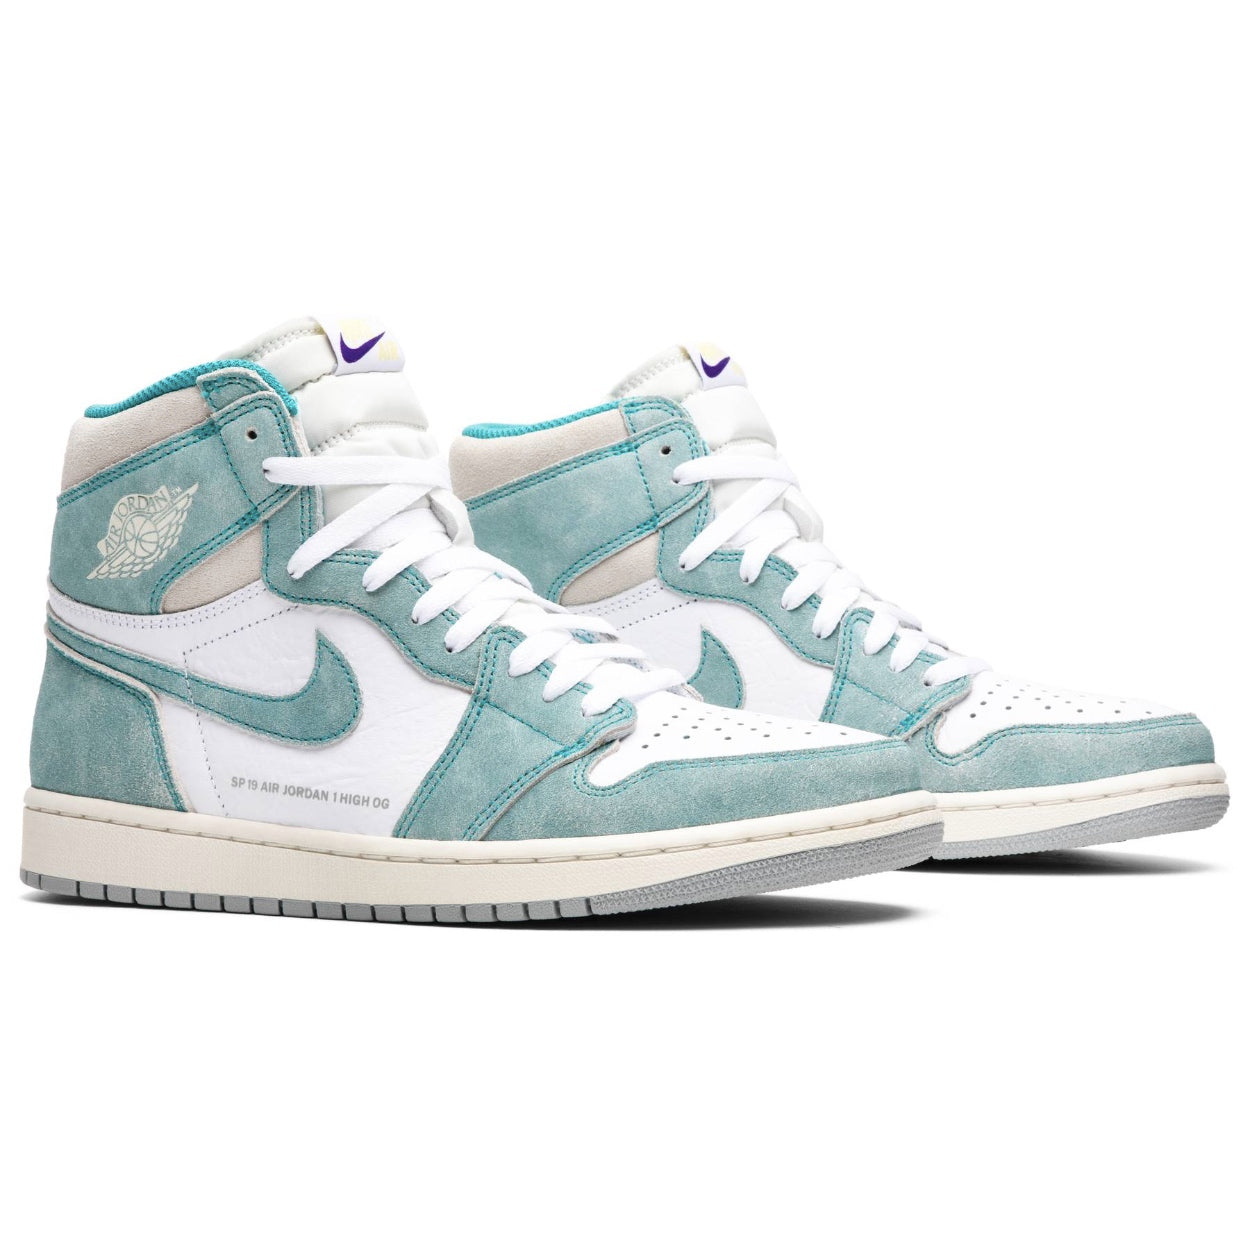 Air Jordan 1 Retro High OG 'Turbo Green' - After Burn